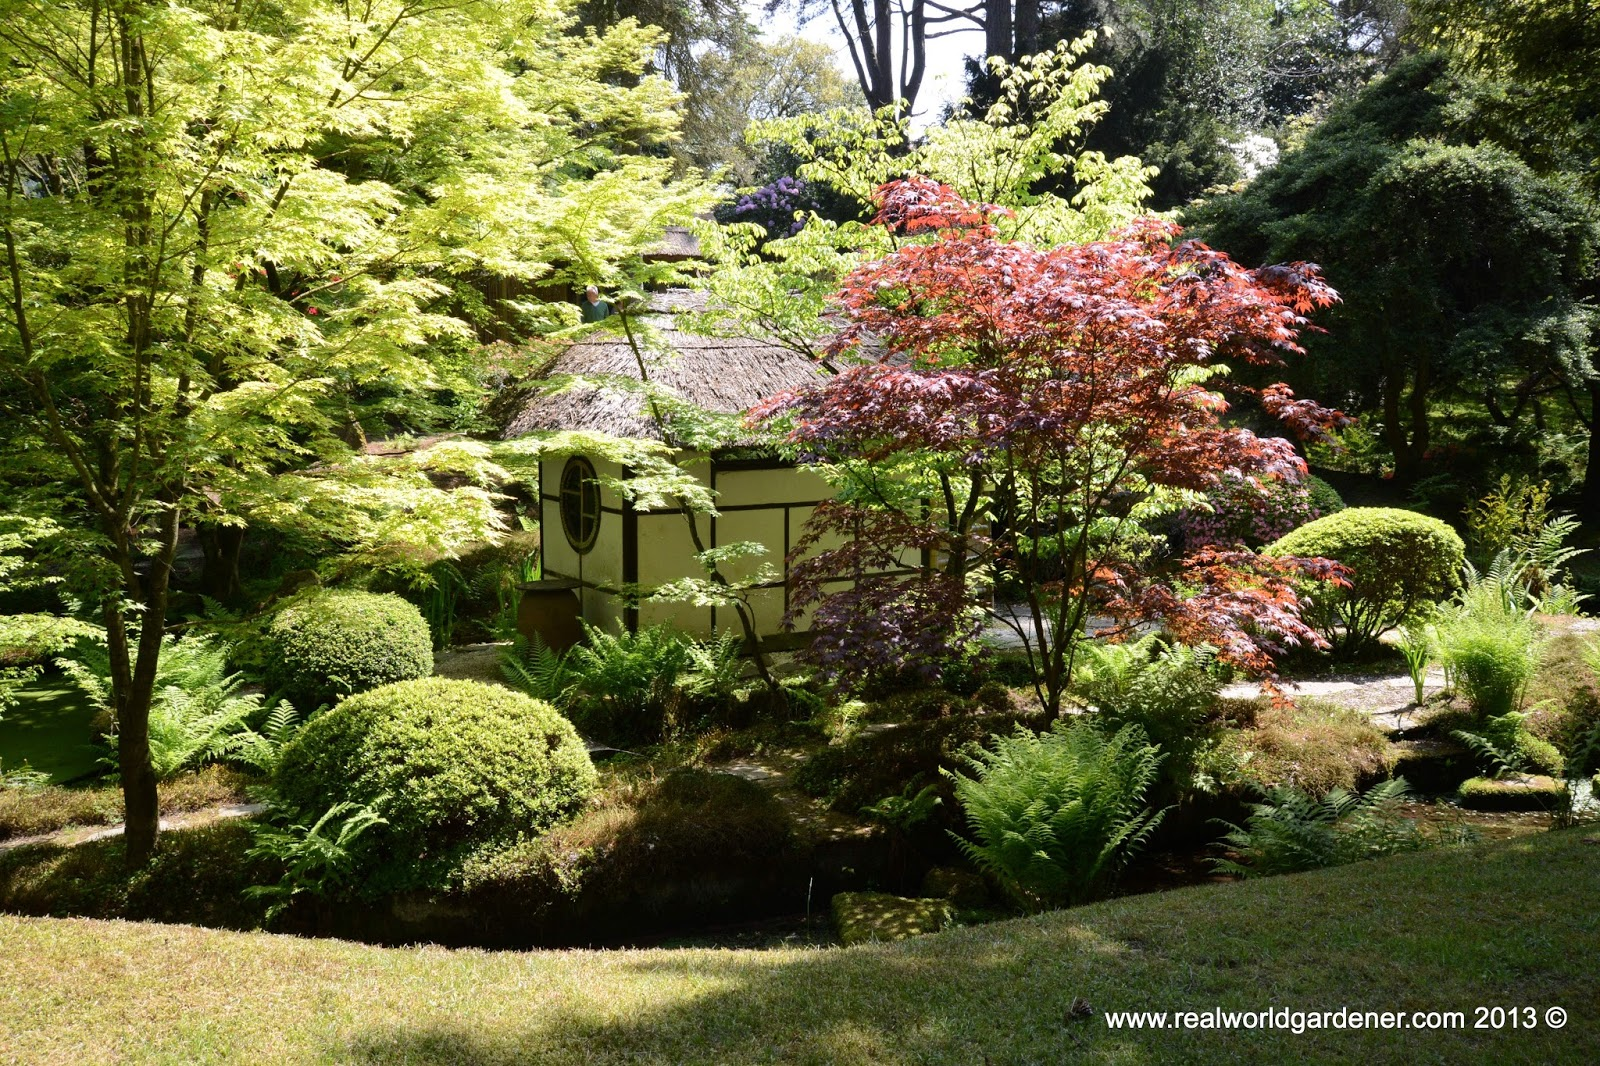 Real world gardener inspirational japanese gardens in for The landscape gardener